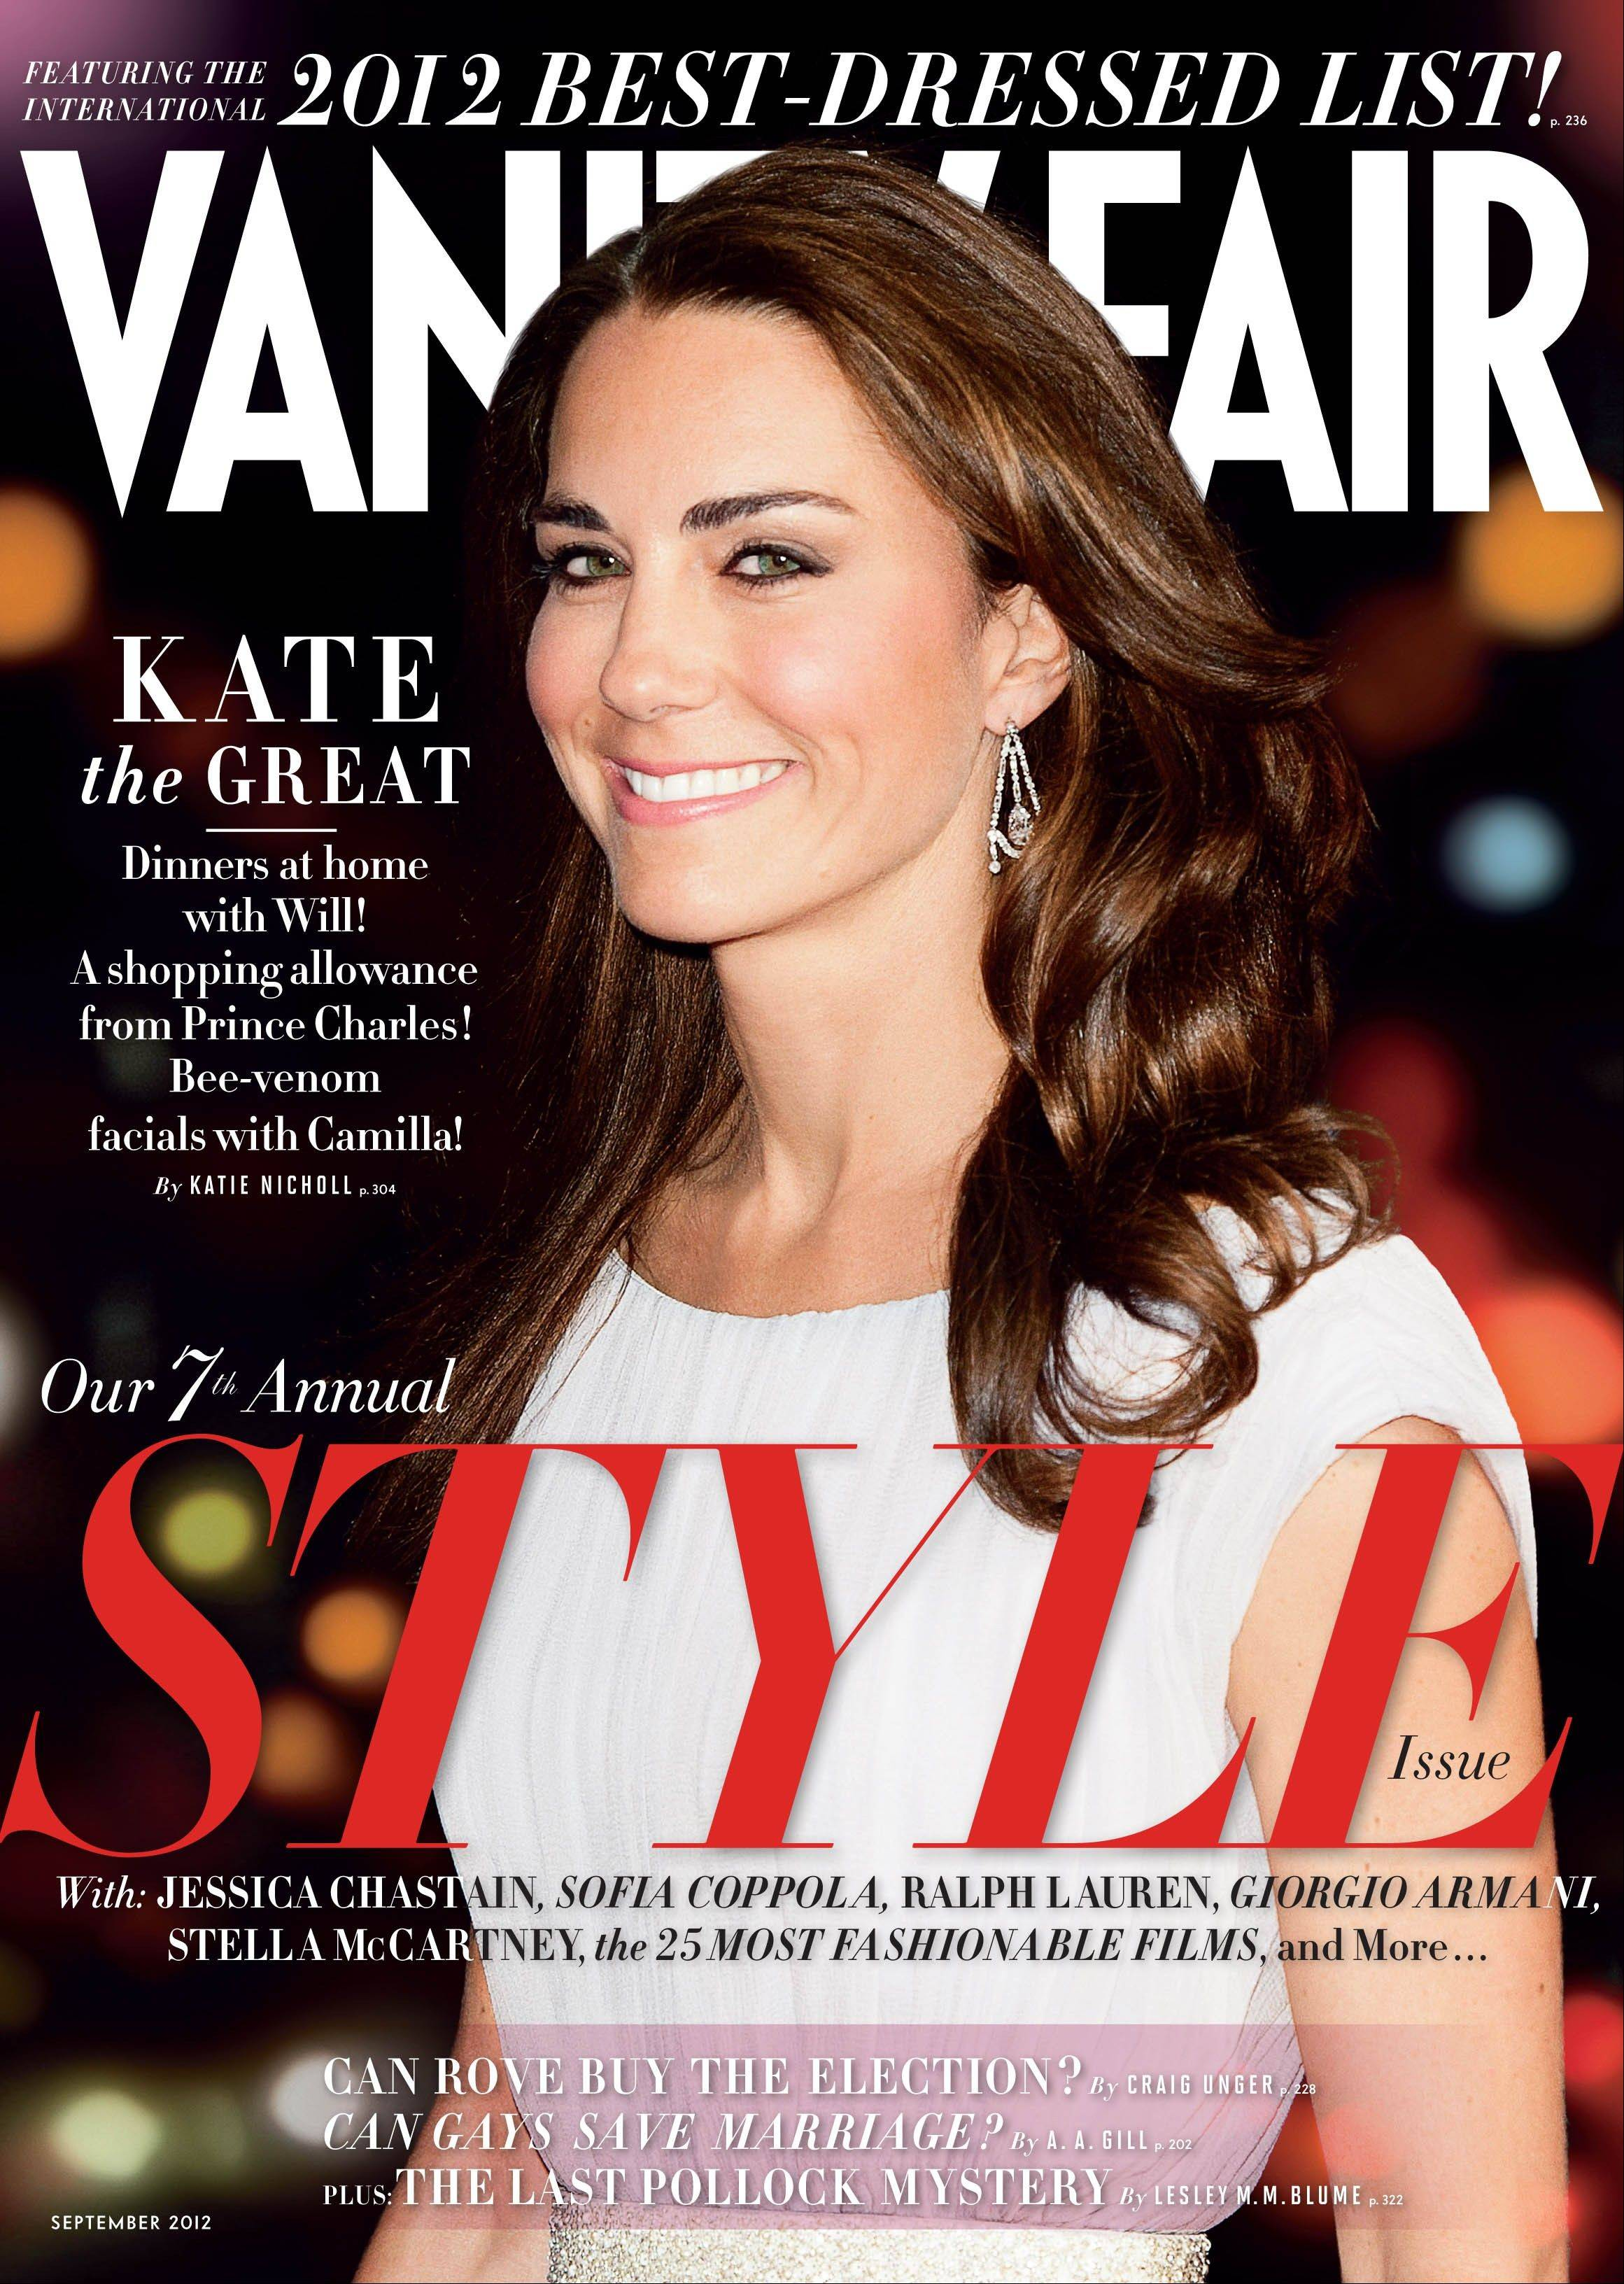 This magazine cover image shows Kate Middleton, the duchess of Cambridge, on the cover of the September 2012 issue of Vanity Fair. British royalty has made its mark atop Vanity Fair�s International Best Dressed List, with Kate Middleton and her brother-in-law, Prince Harry, both making this year�s slate. The September 2012 issue of Vanity Fair hits newsstands in New York and Los Angeles on August 2 and nationally and on the iPad on August 7.